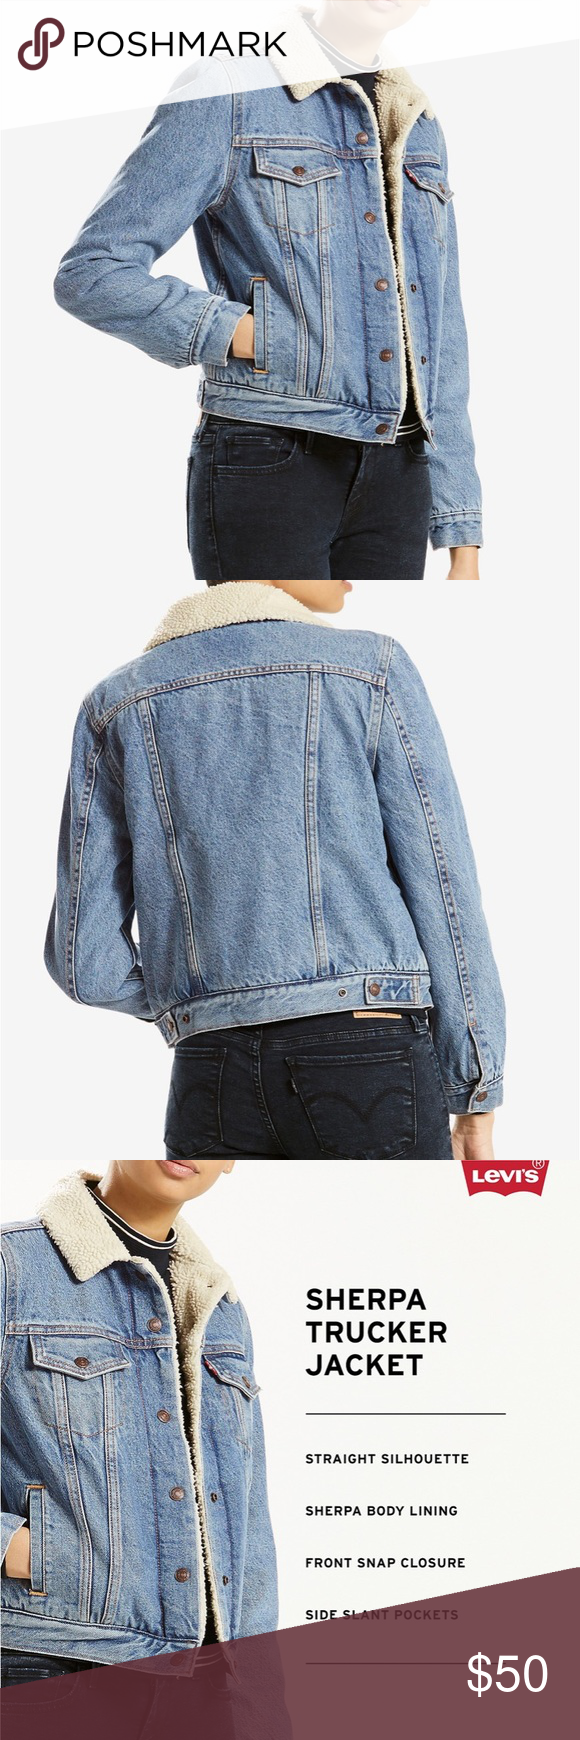 Levi's Denim Wool Sherpa Lining Jacket NWT (With images ...